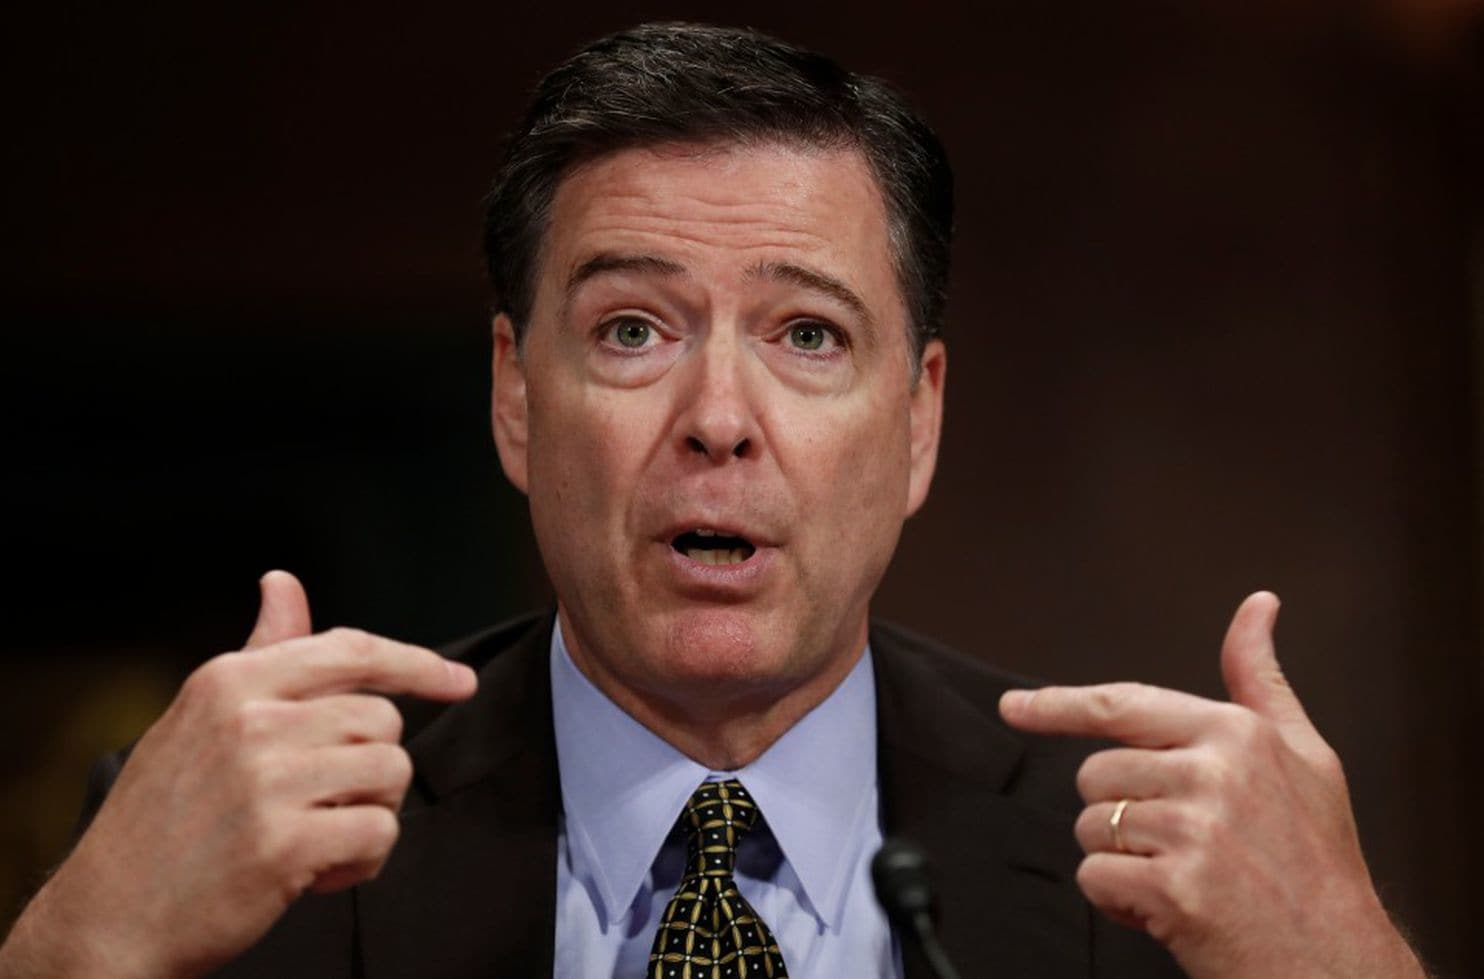 Trump 'morally unfit' for office, fired FBI chief Comey tells ABC